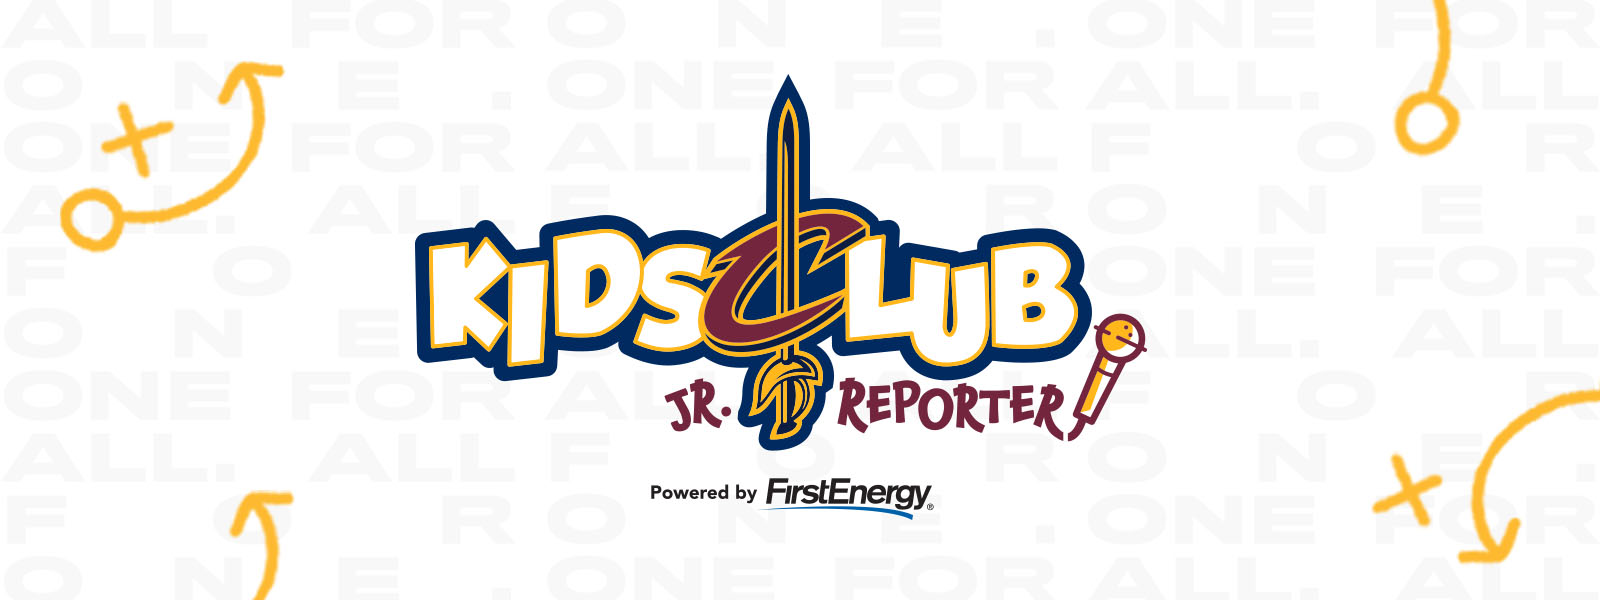 MKTG-150151 20-21 Cavs Jr. Reporter Sweepstakes Graphics 0127_RMFH Header